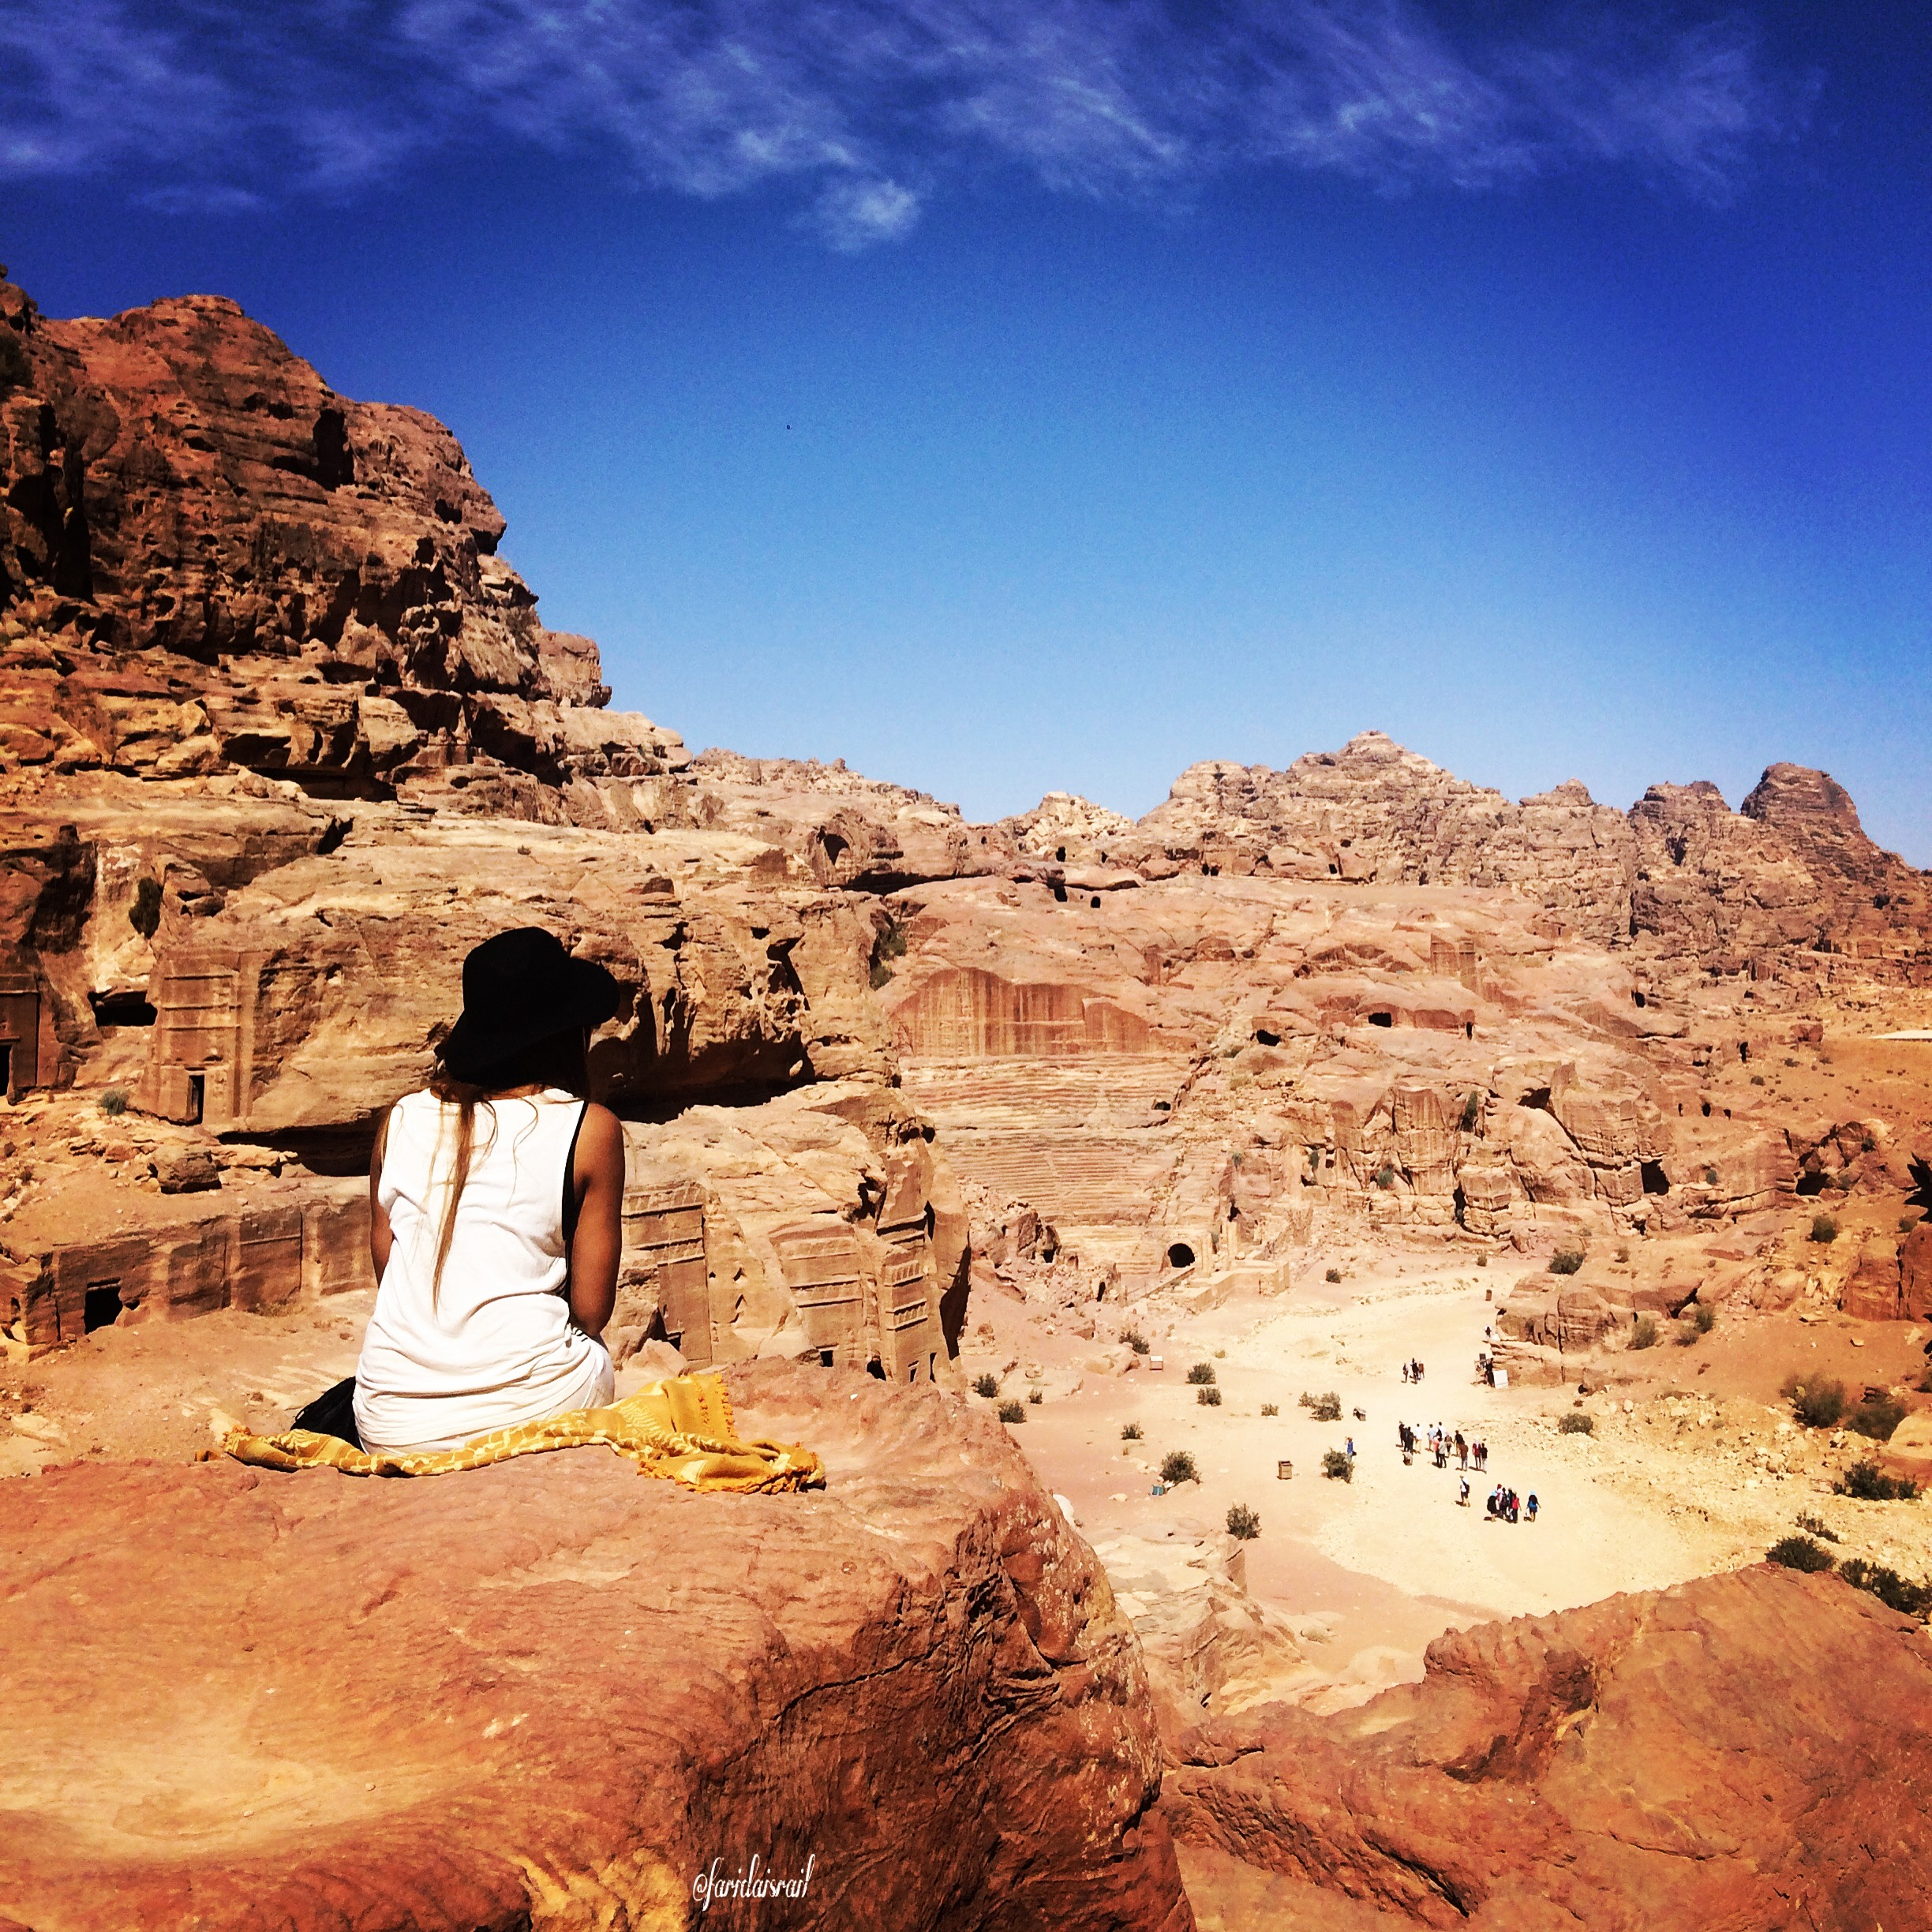 PETRA / Jordan!! Travel diary…Things to do & Top 5 places to visit in jordan?